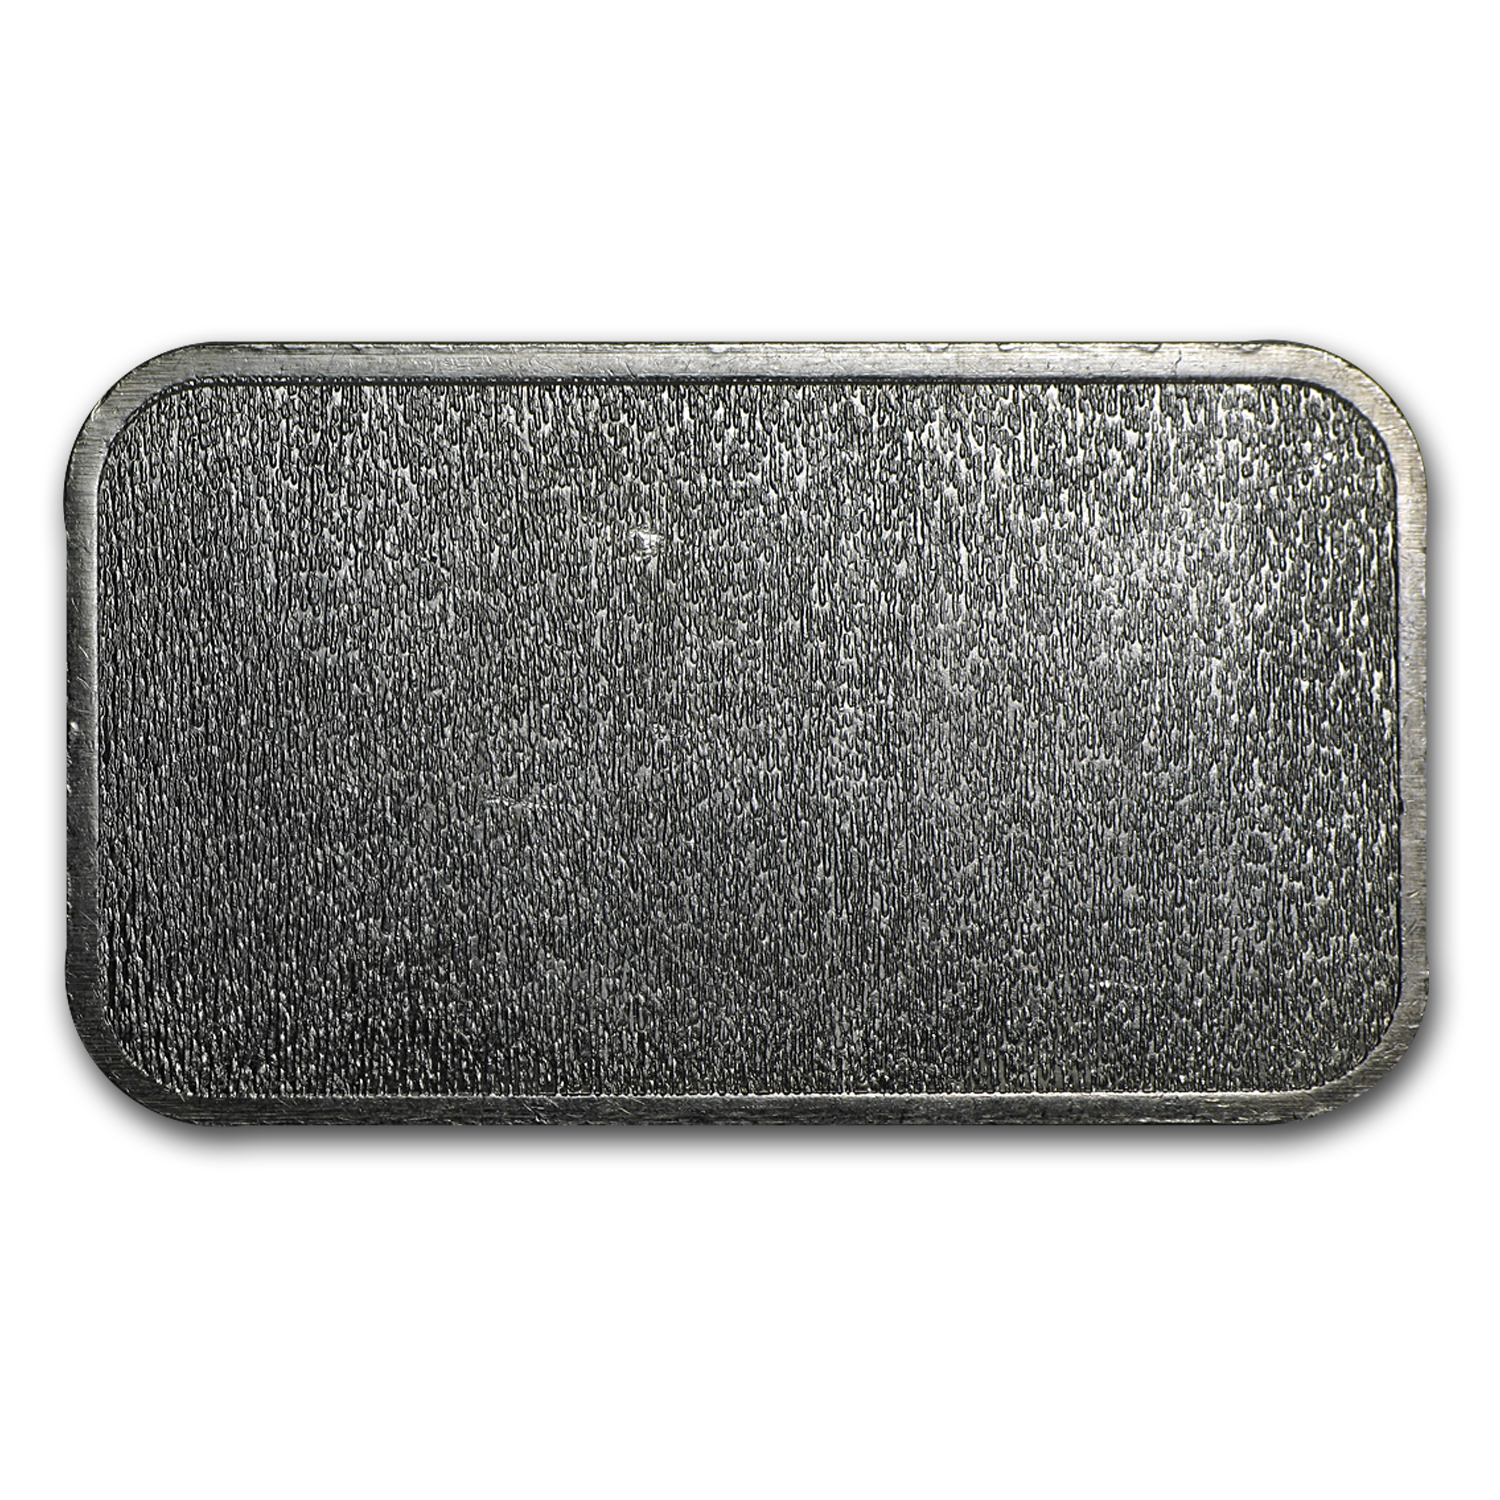 1 oz Silver Bars - Engelhard (Wide/Logo/Frosted/1980/5-digit)